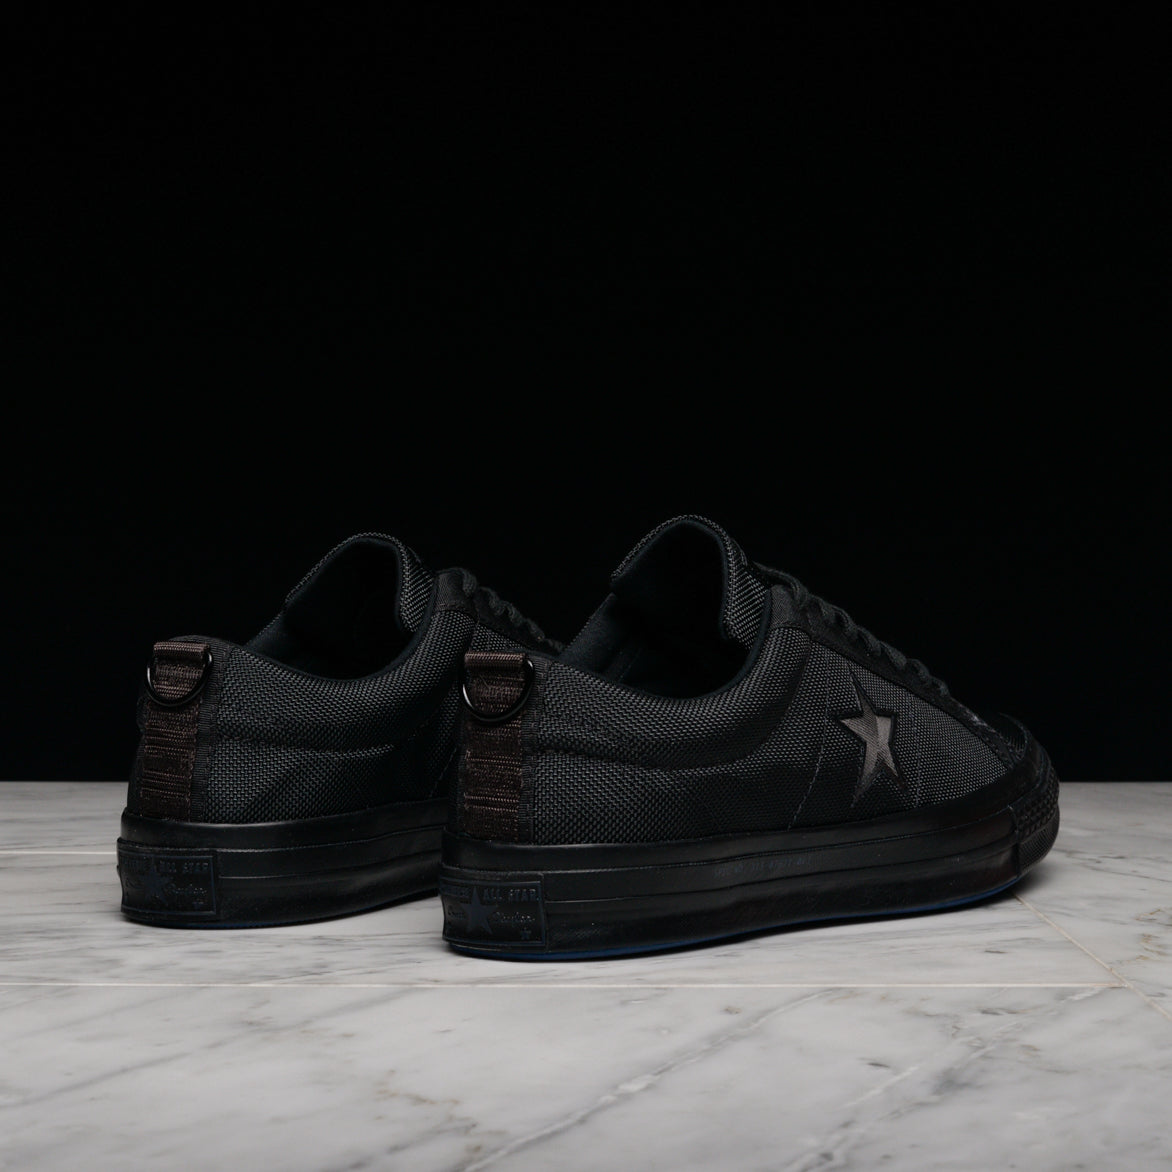 CARHARTT WIP X CONVERSE ONE STAR OX - BLACK